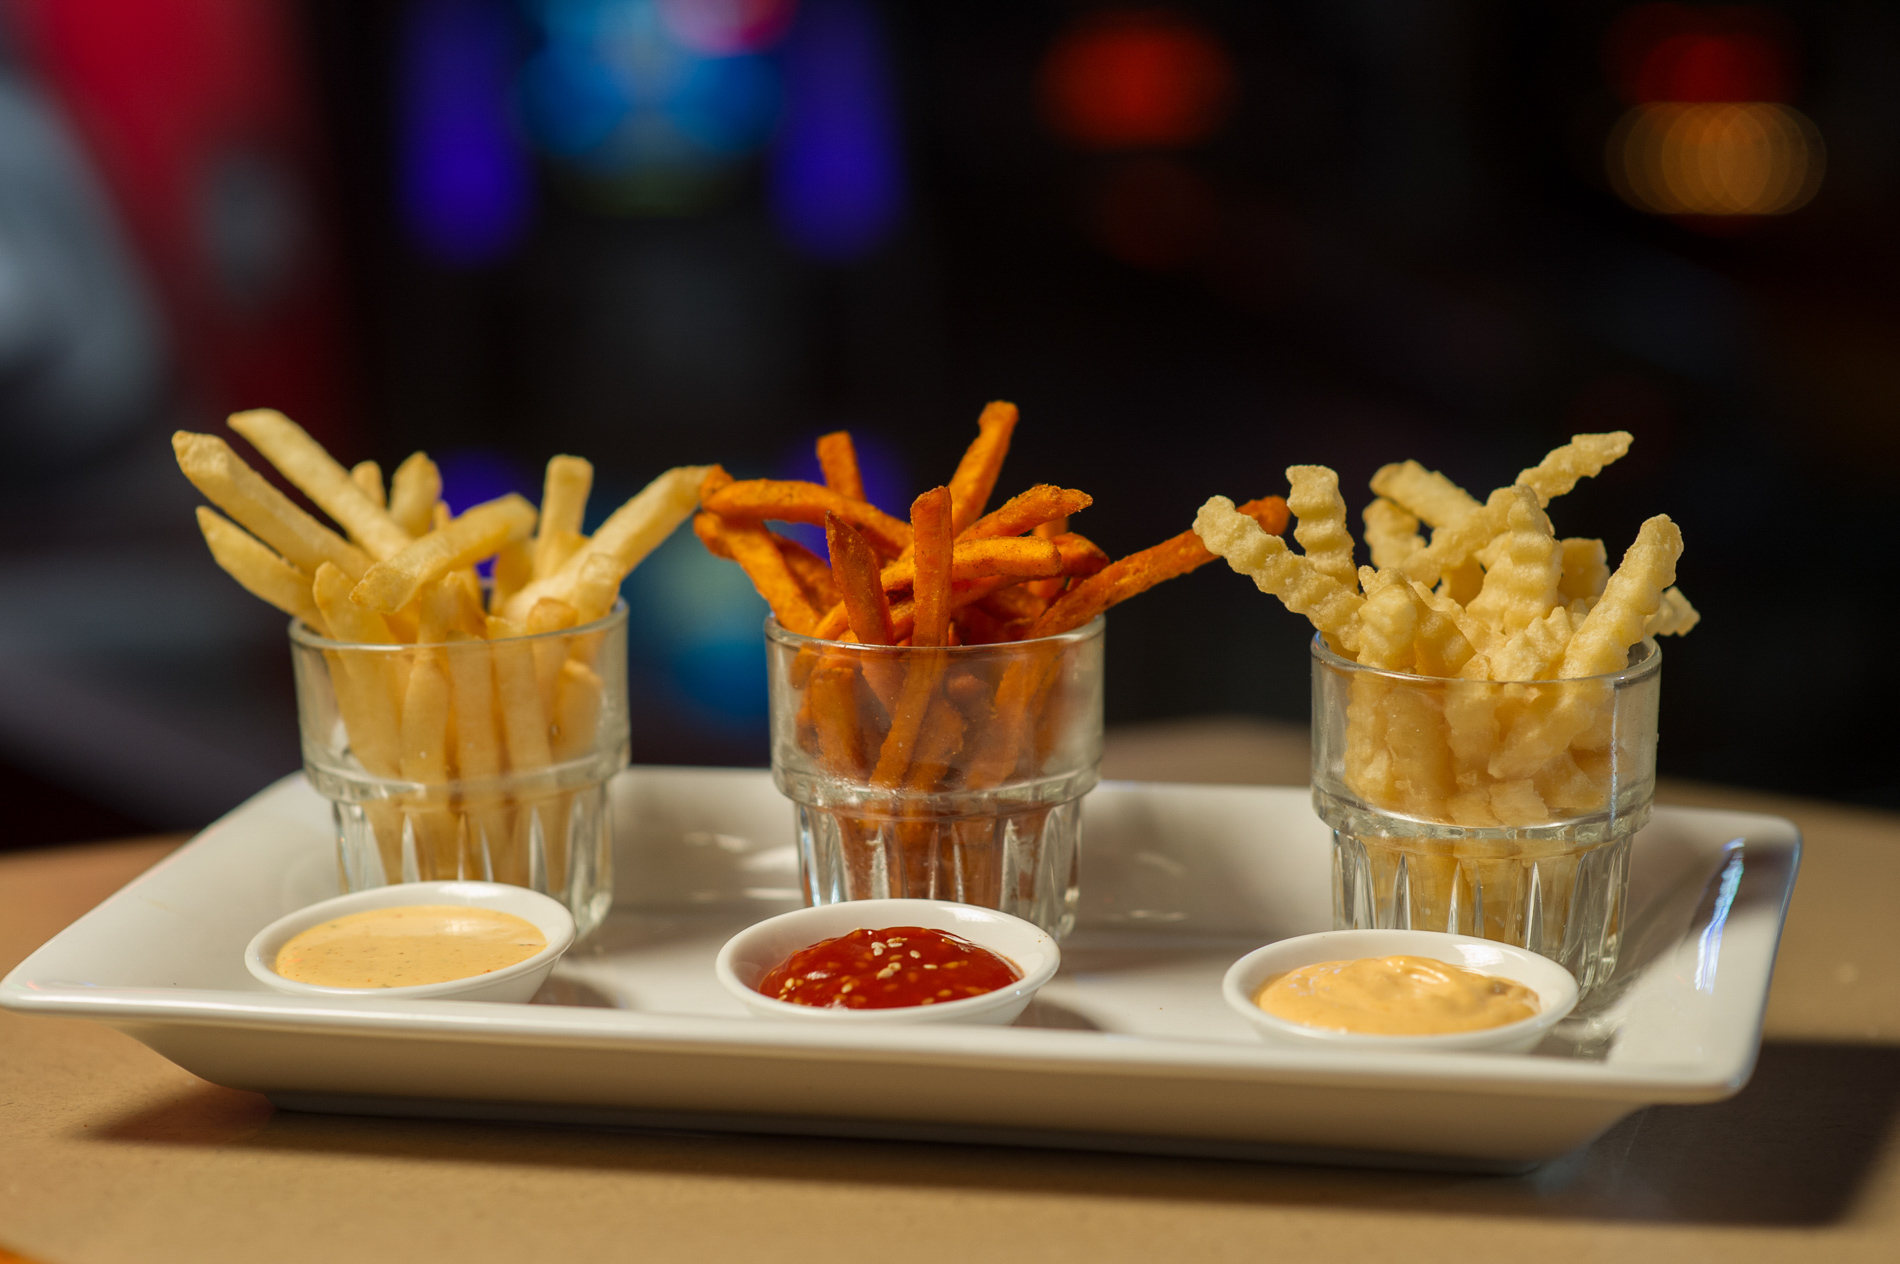 A Variety of Fries